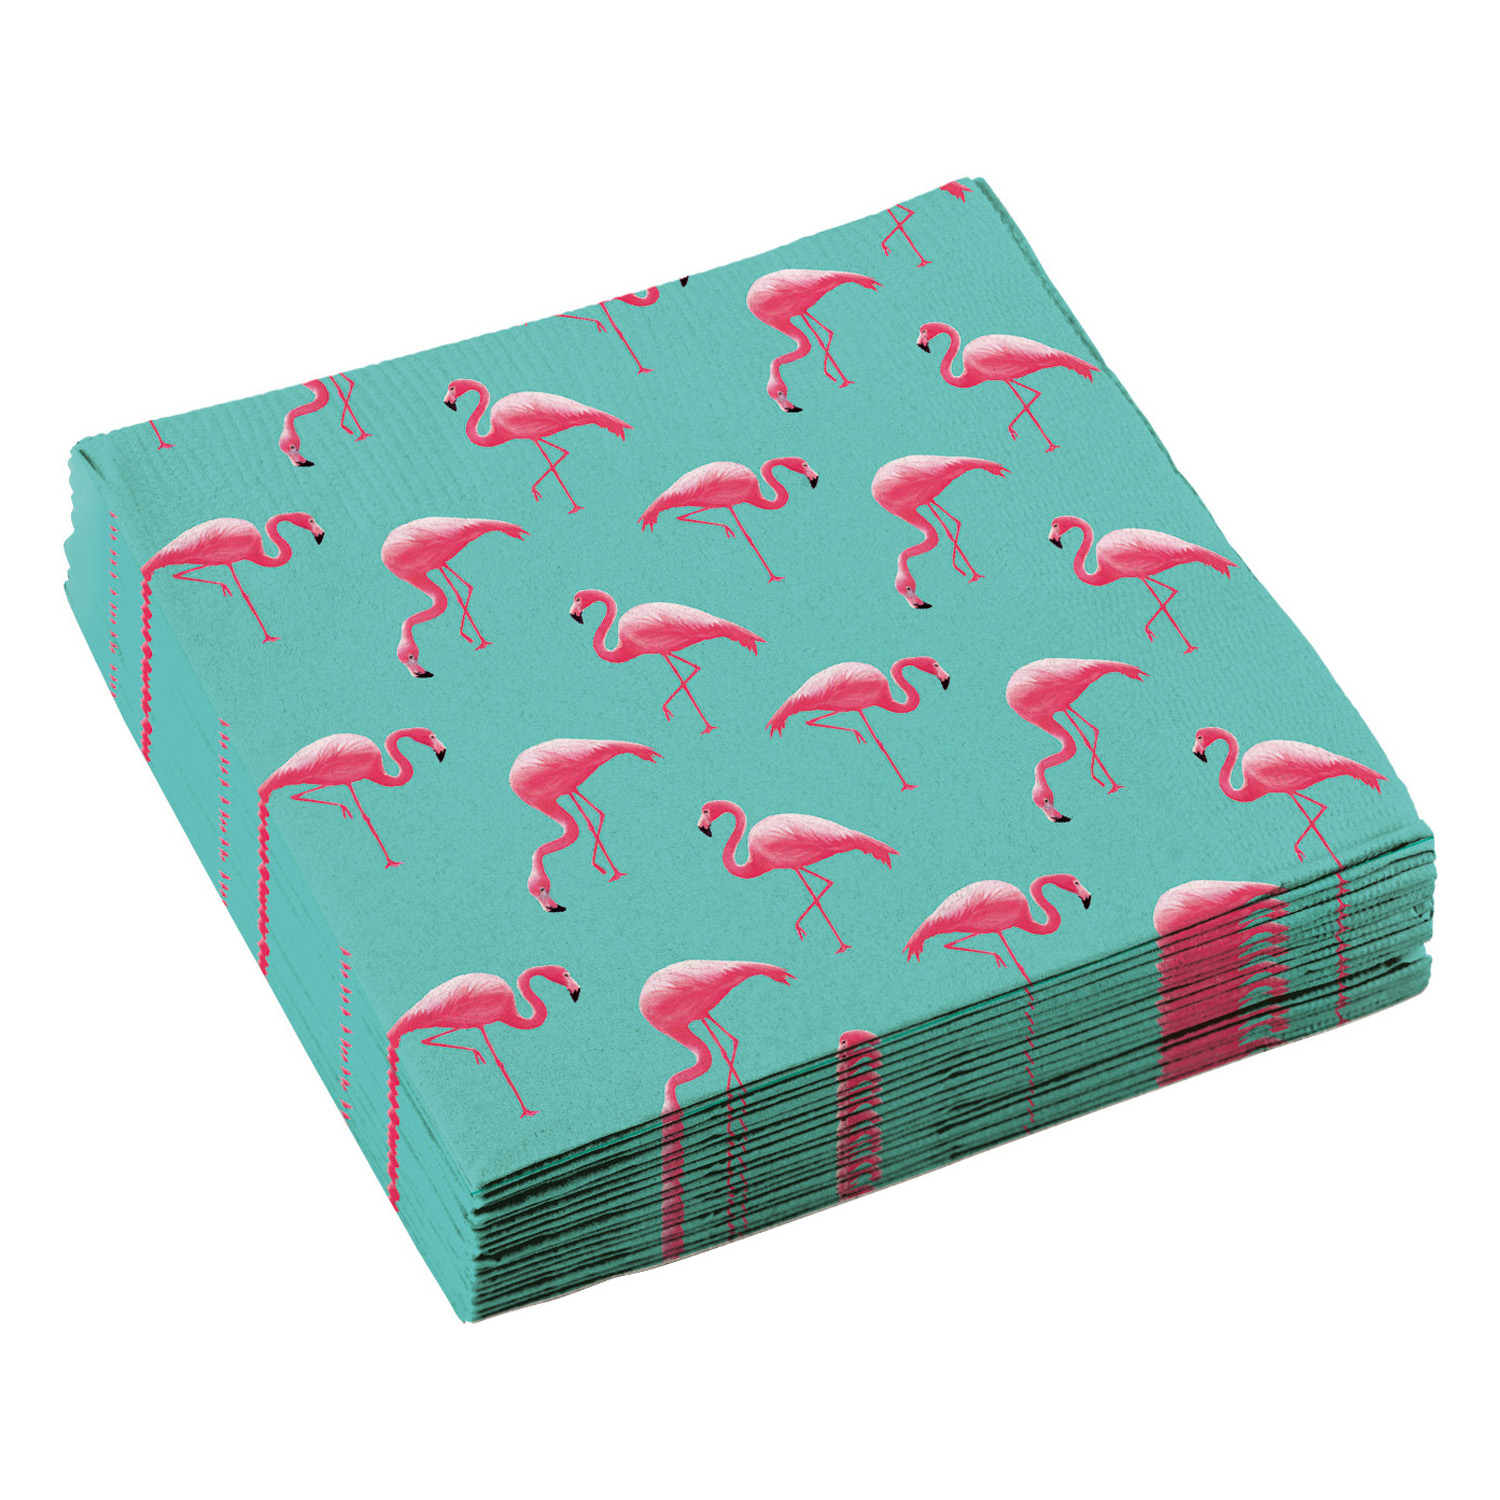 20 Flamingo Party Servietten 33 x 33 cm von Amscan